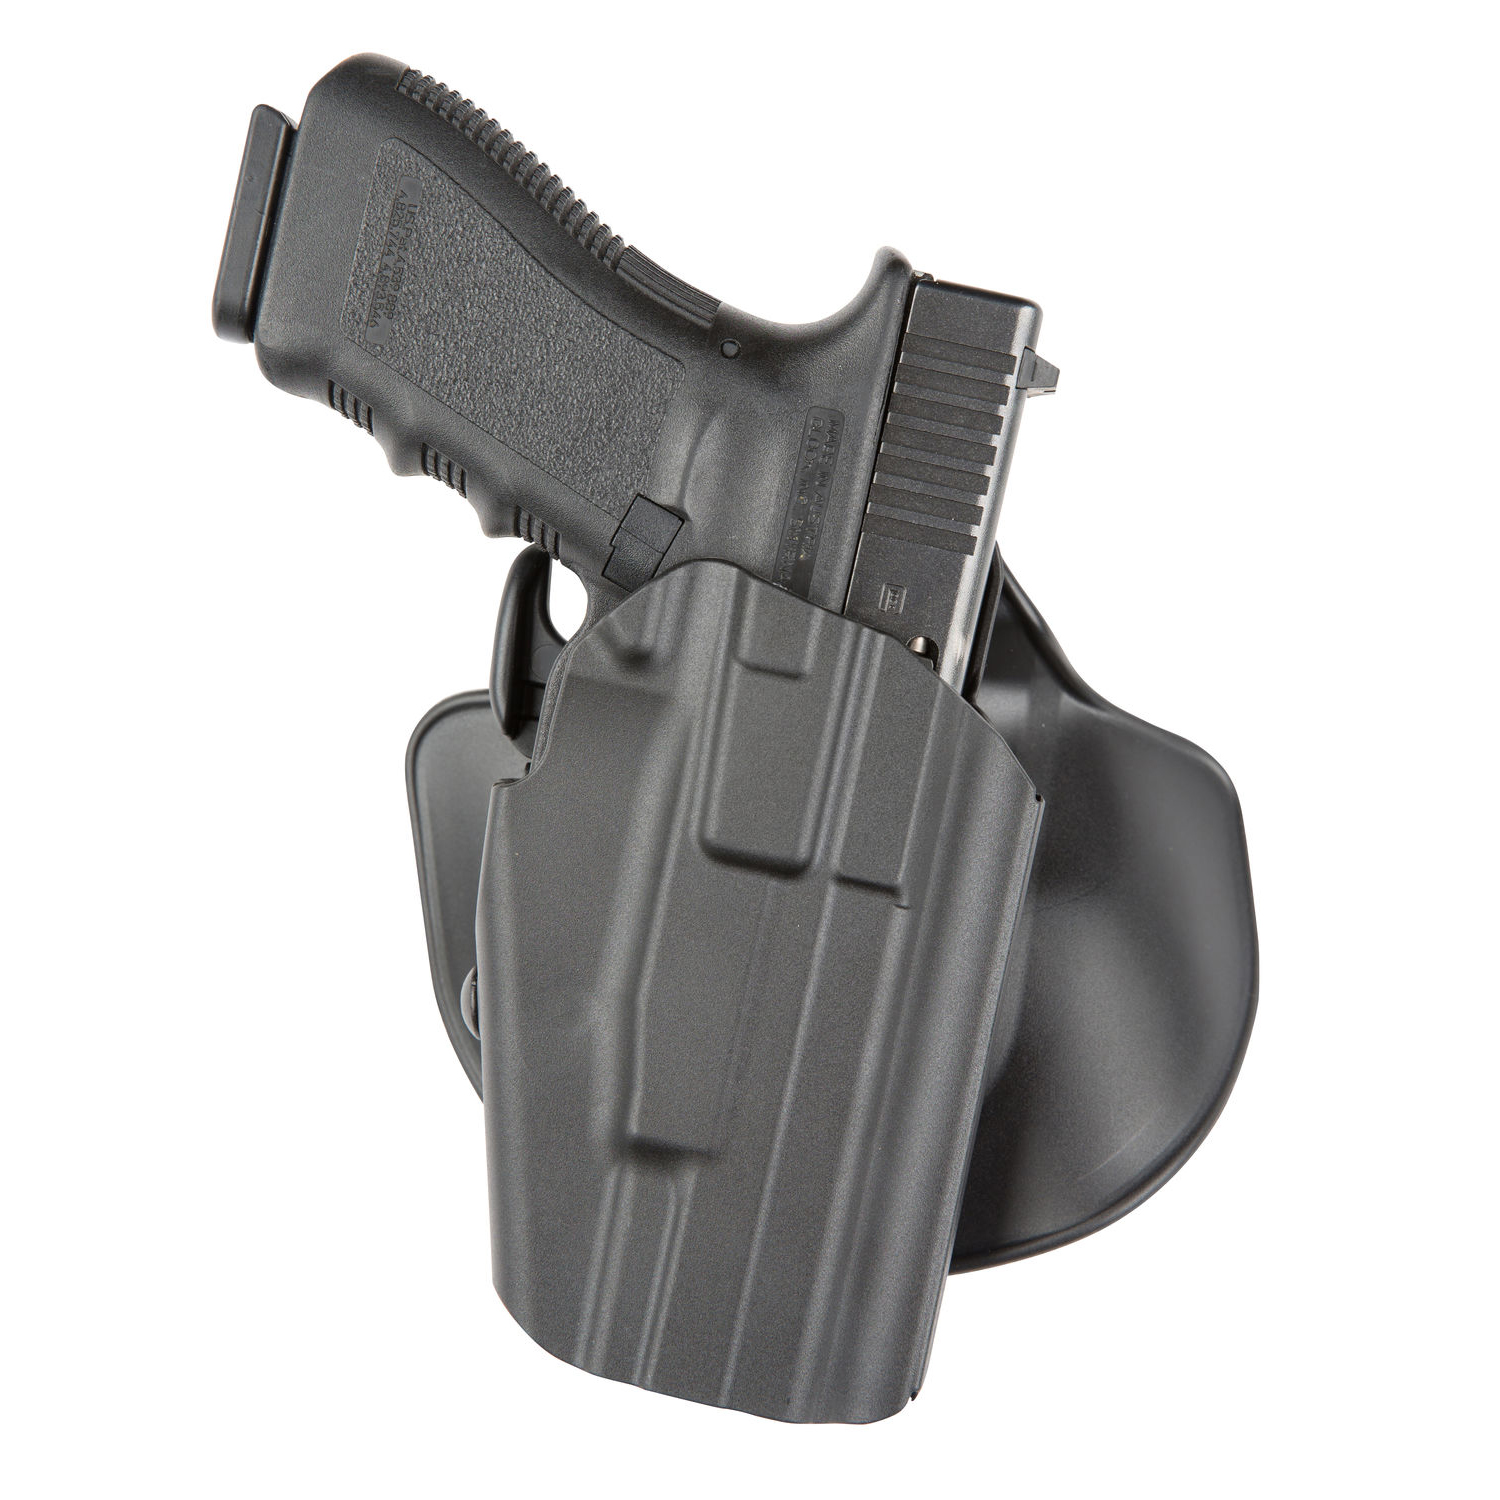 Safariland Model 578 GLS Pro-Fit Paddle Holster, Wide Long